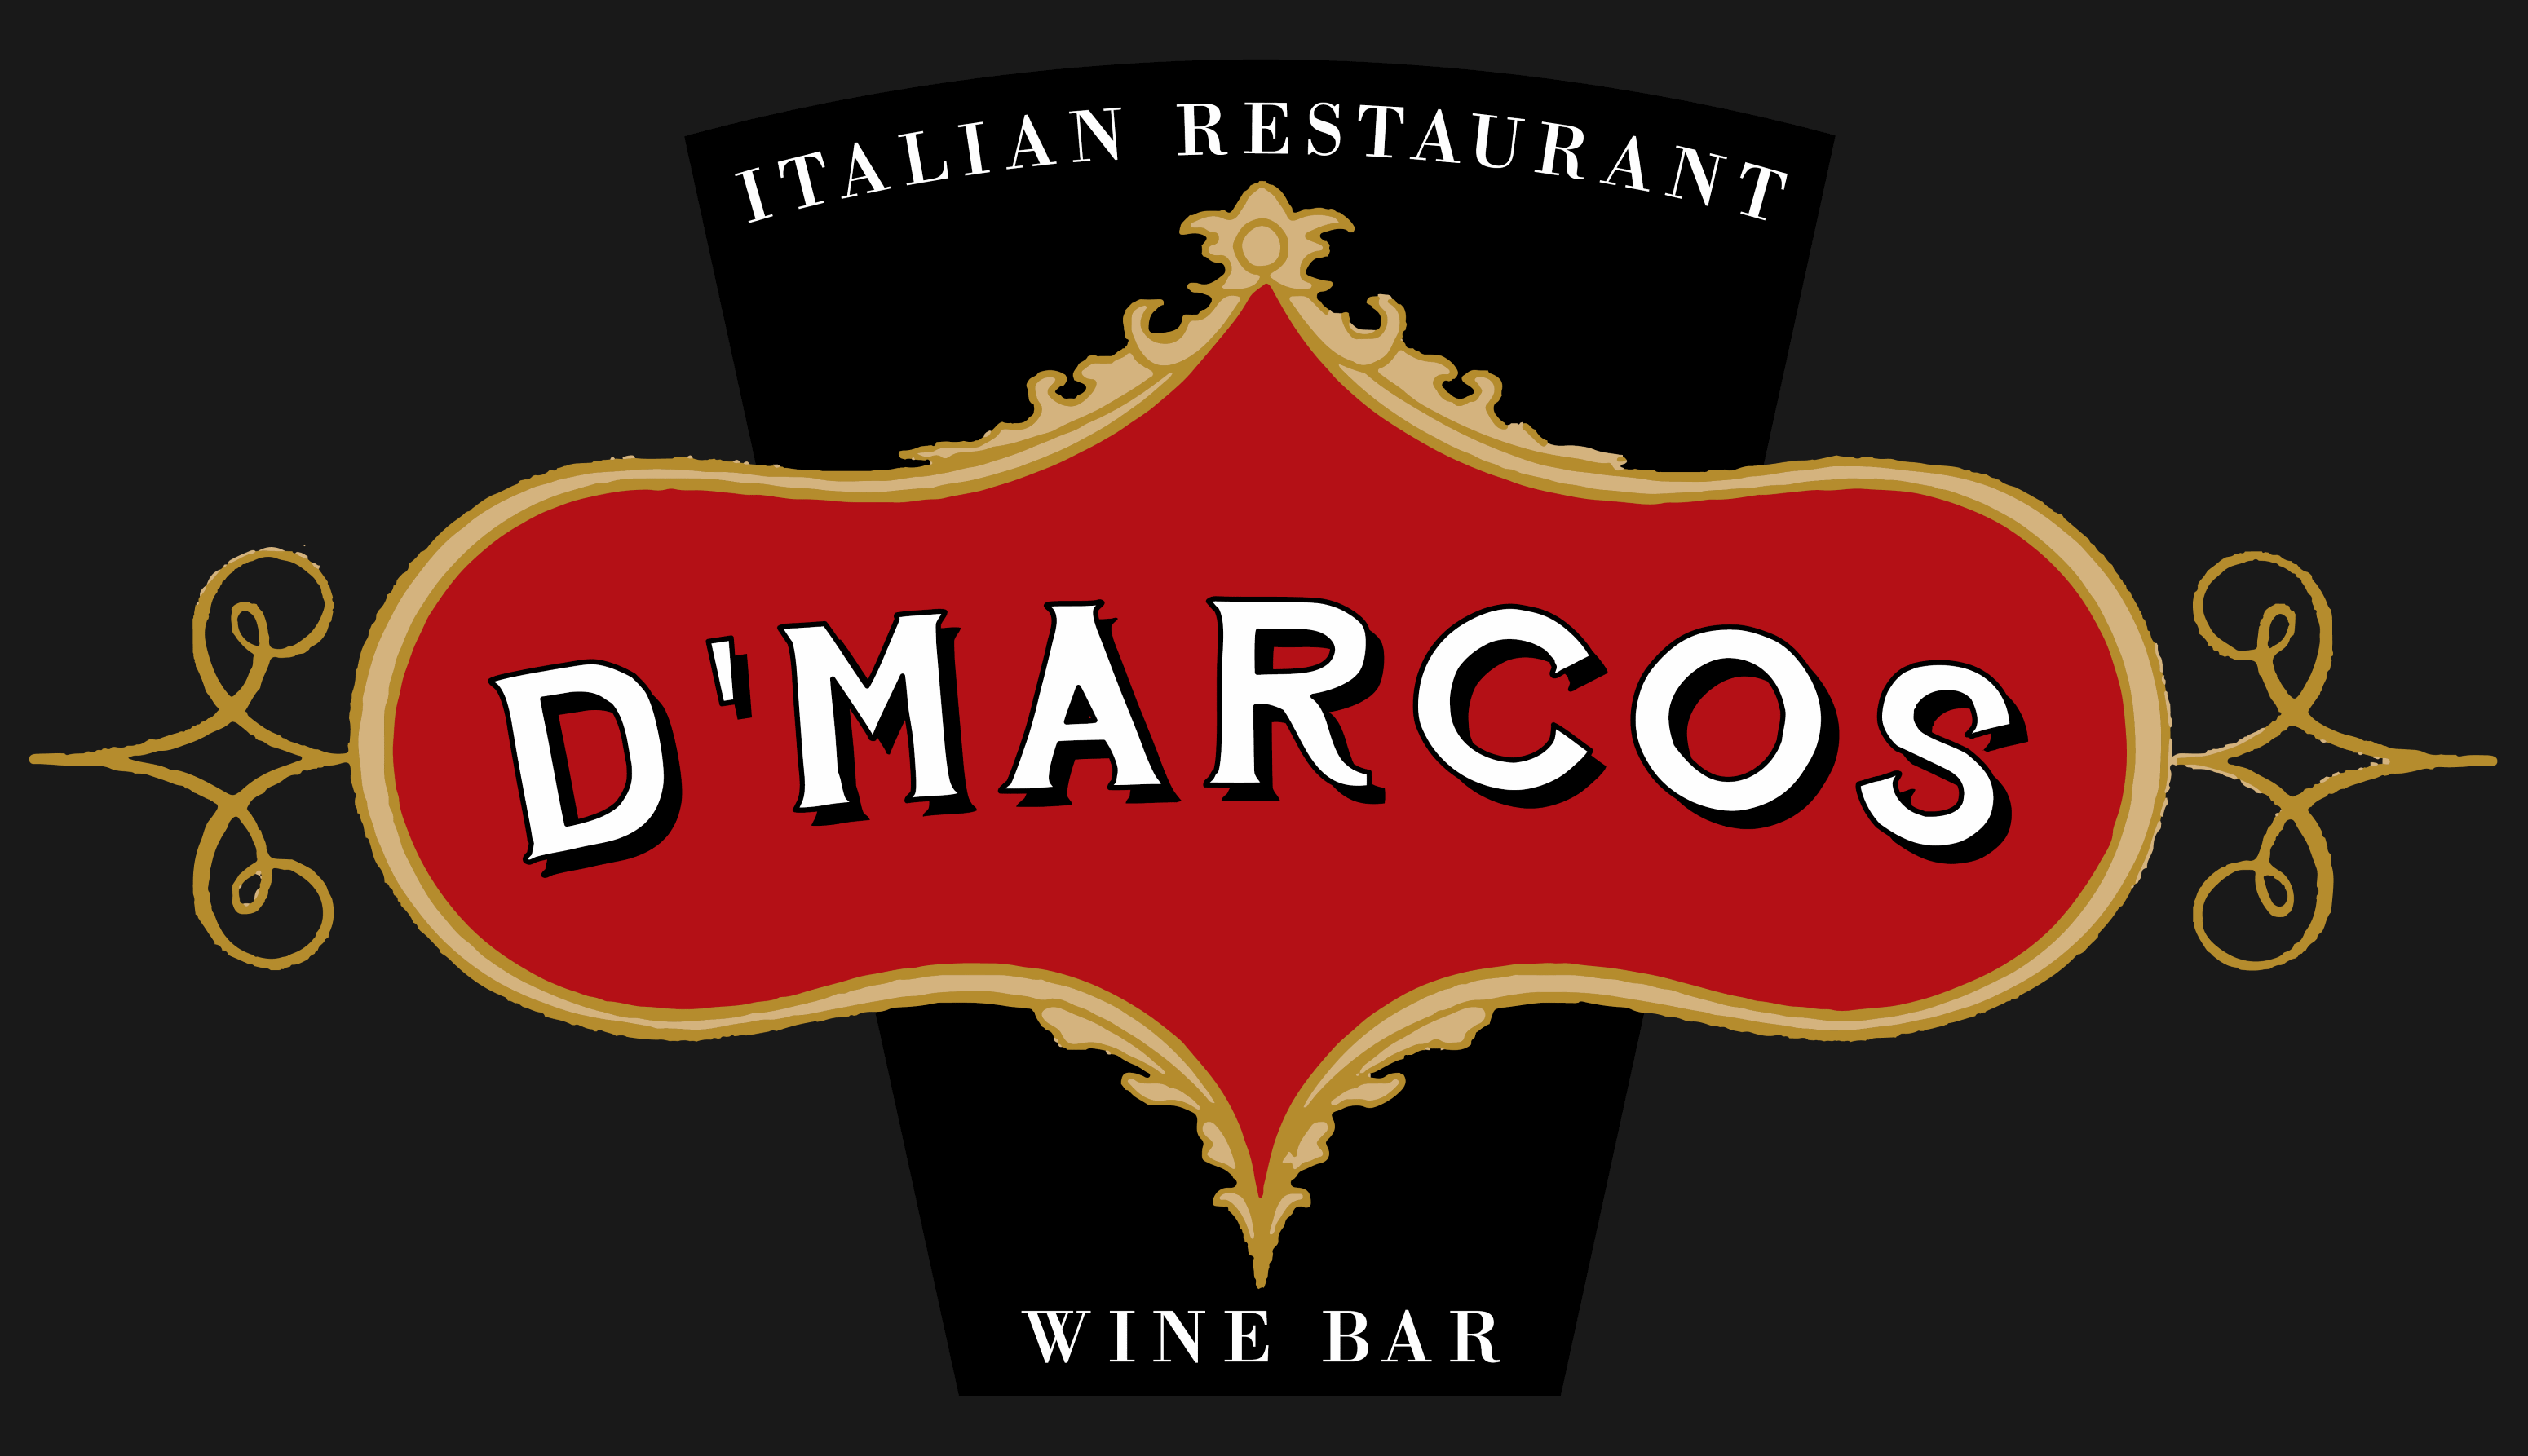 D'Marcos Italian Restaurant and Wine Bar